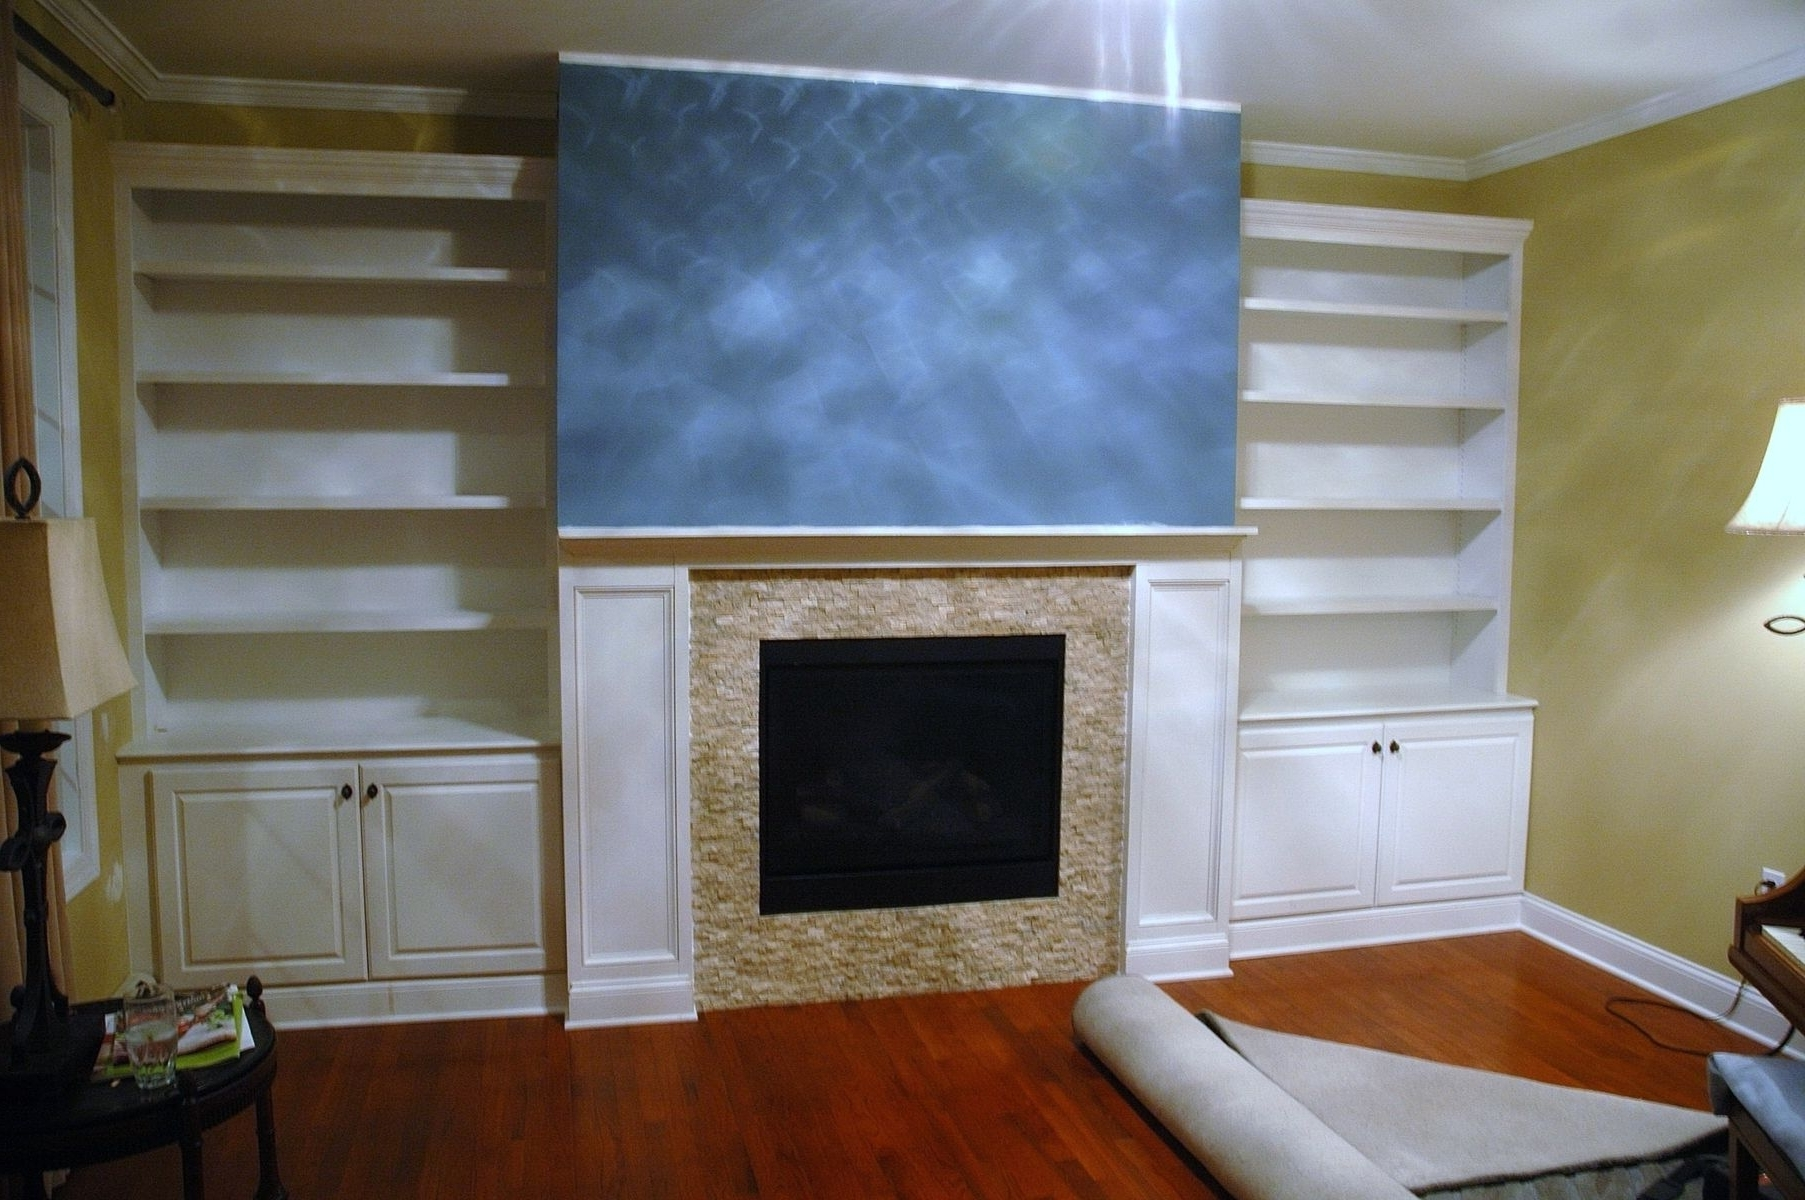 Wall Units: Glamorous Built In Bookcase Kit Prefabricated Regarding 2018 Built In Bookcases Kit (View 5 of 15)